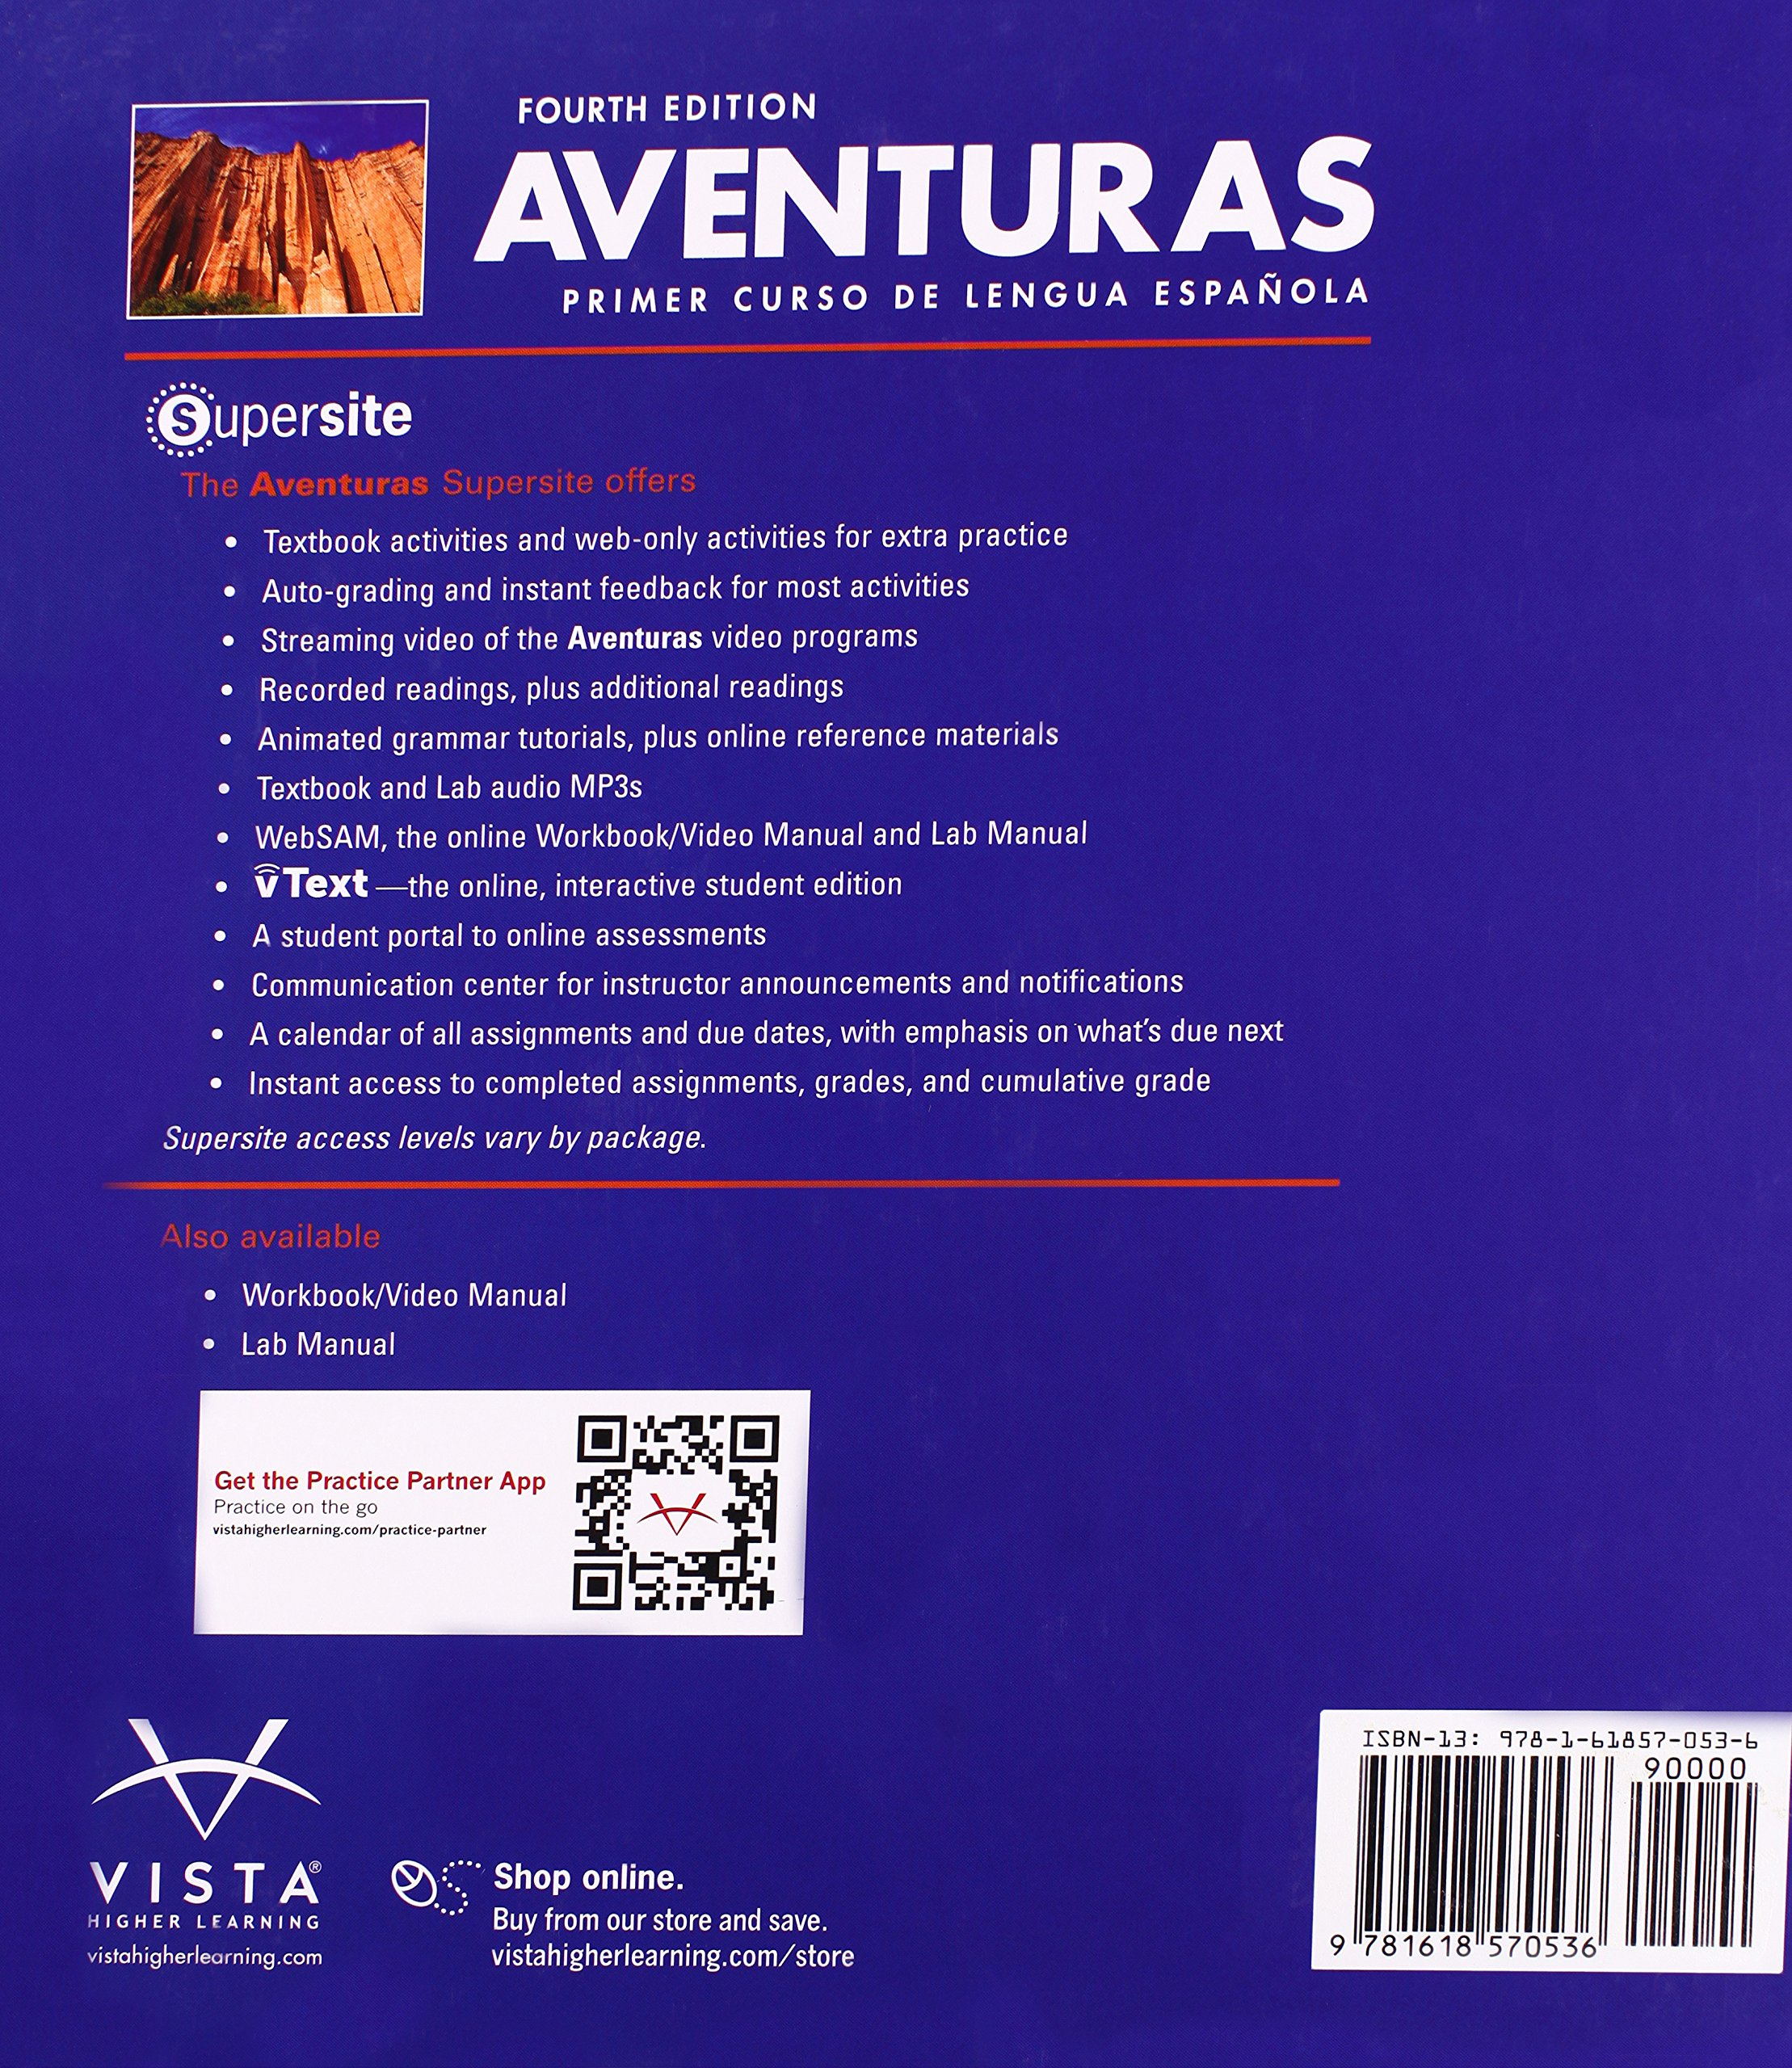 Aventuras text only vista higher learning 9781618570536 amazon aventuras text only vista higher learning 9781618570536 amazon books fandeluxe Gallery